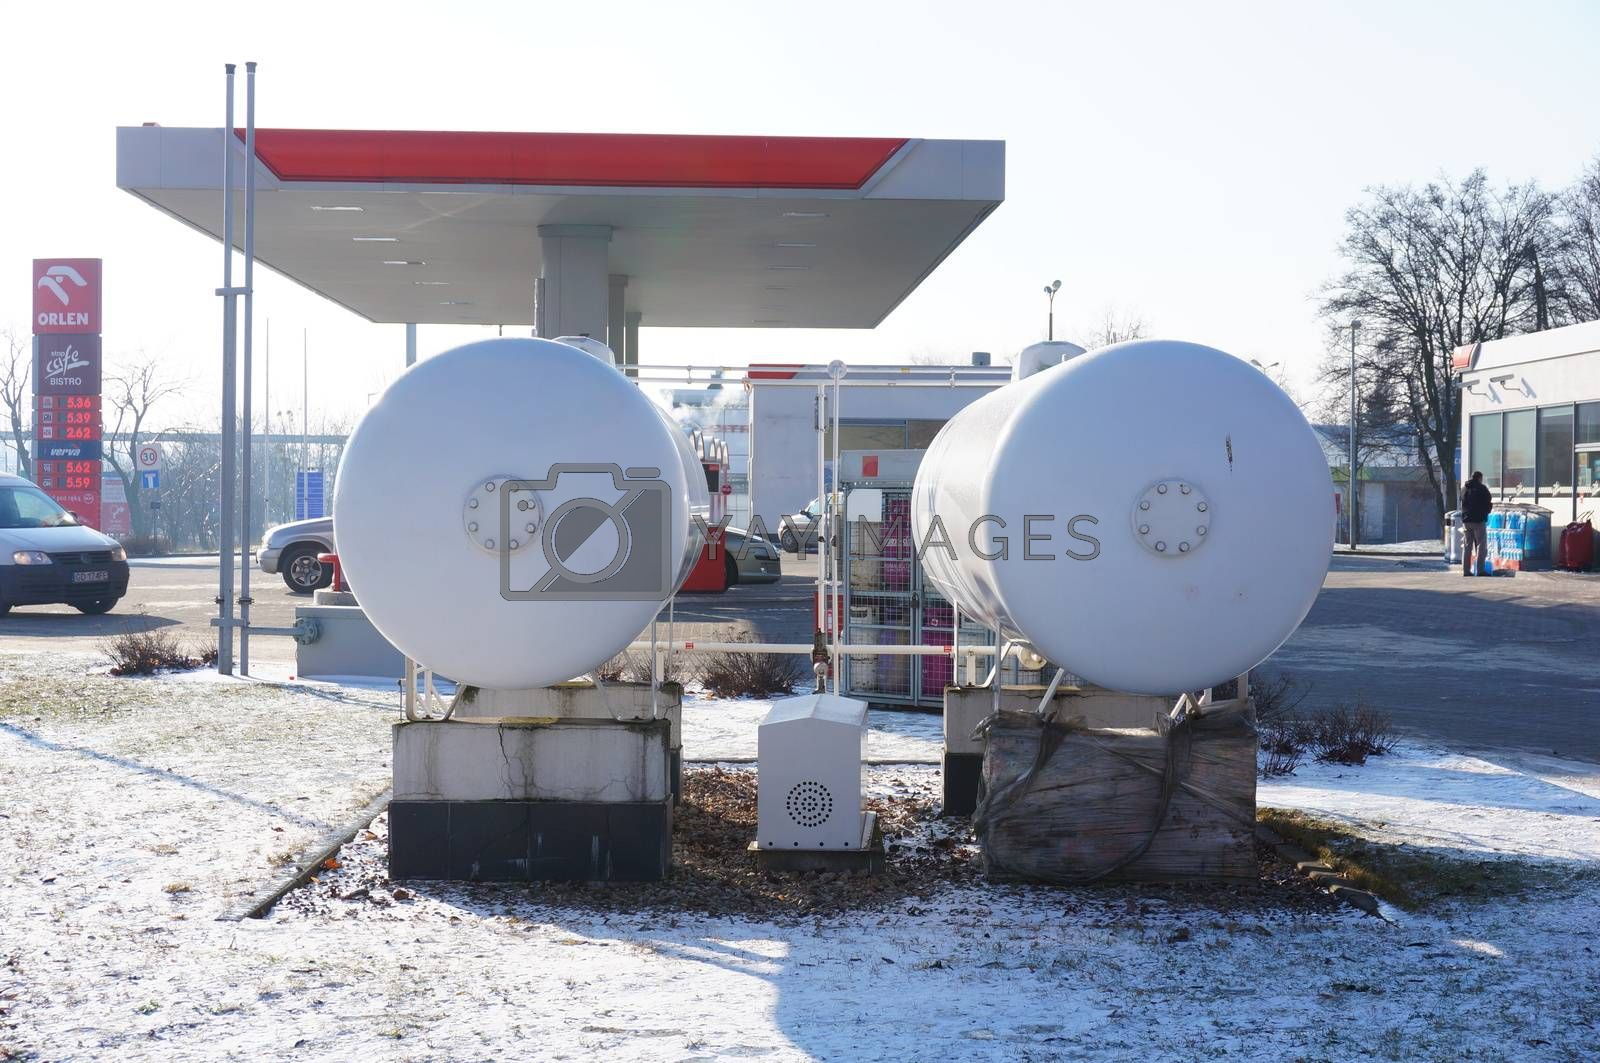 POZNAN, POLAND - JANUARY 25, 2014: Two oil tanks at a Orlen filling station on a cold winter day